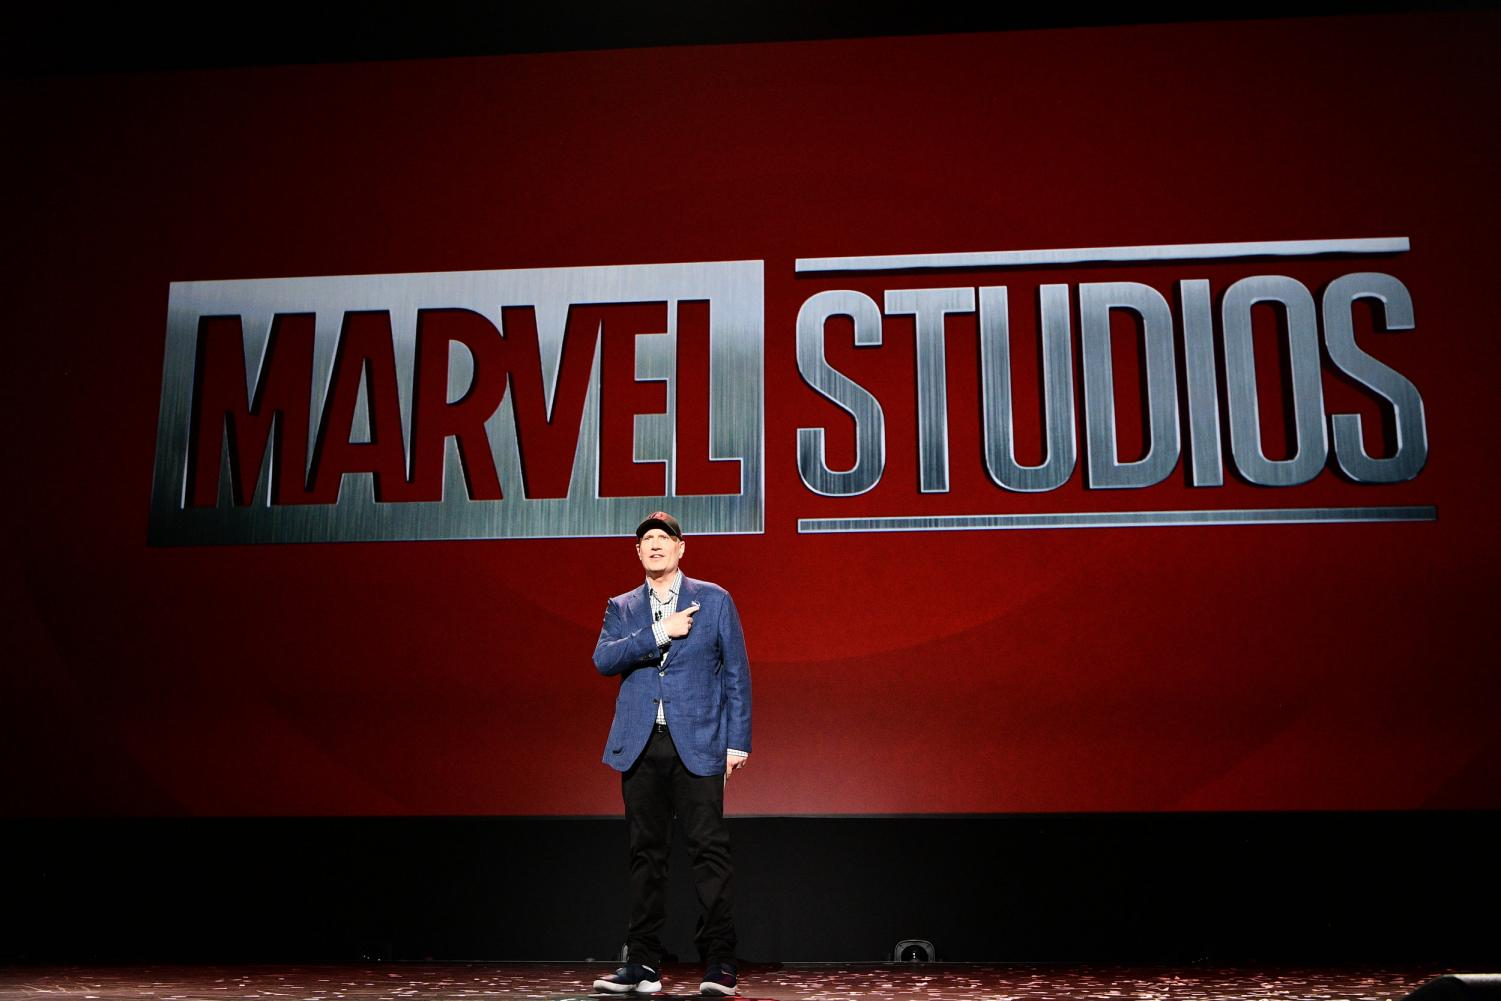 Marvel Studios President Kevin Feige takes the stage to announce details to Phase 4 of the MCU. Photo courtesy of D23.